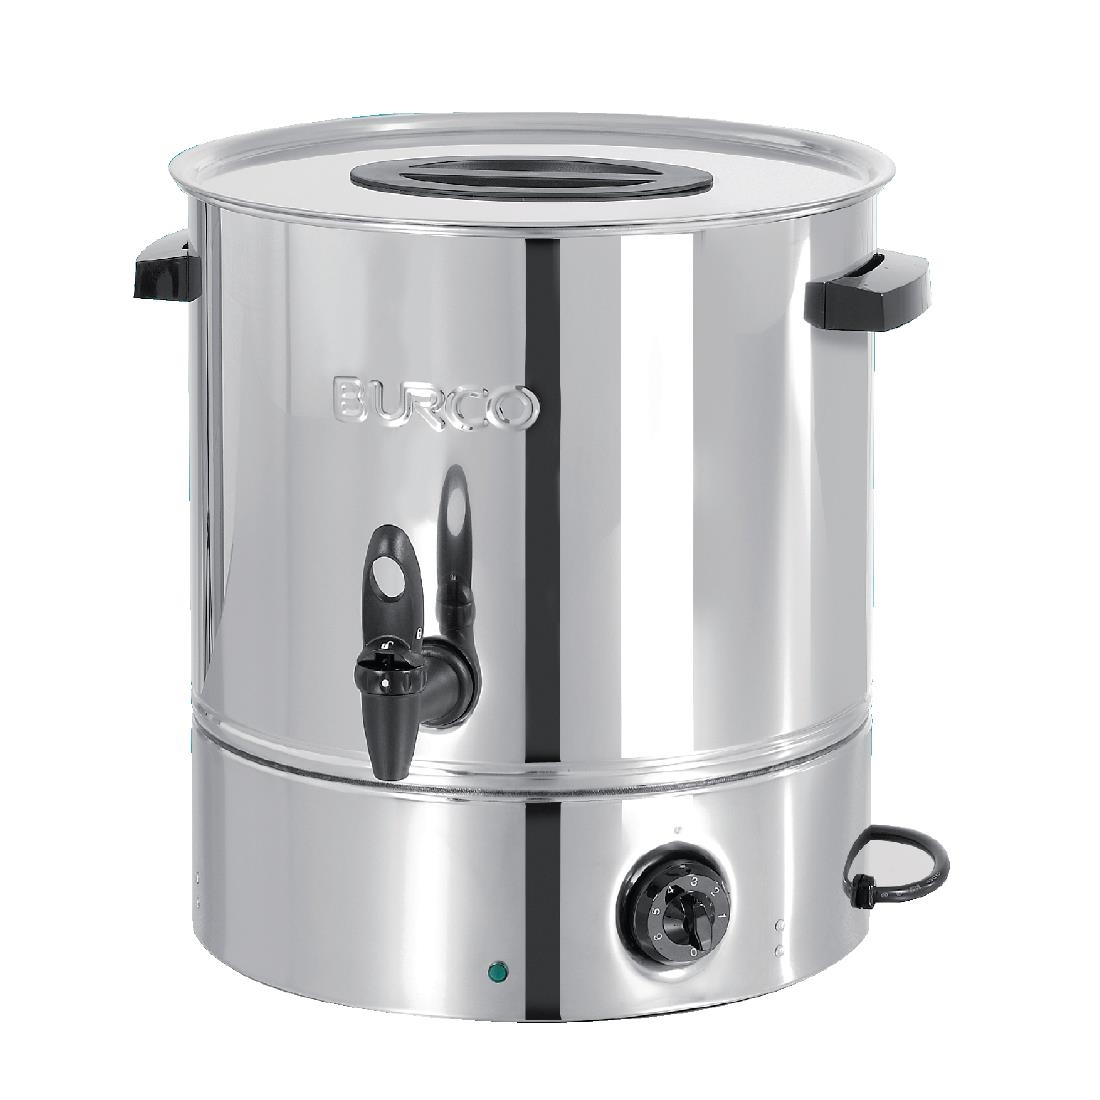 Burco Manual Fill Water Boiler 20ltr Ce705 Buy Online At Nisbets An Electric Heater Wiring Diagram